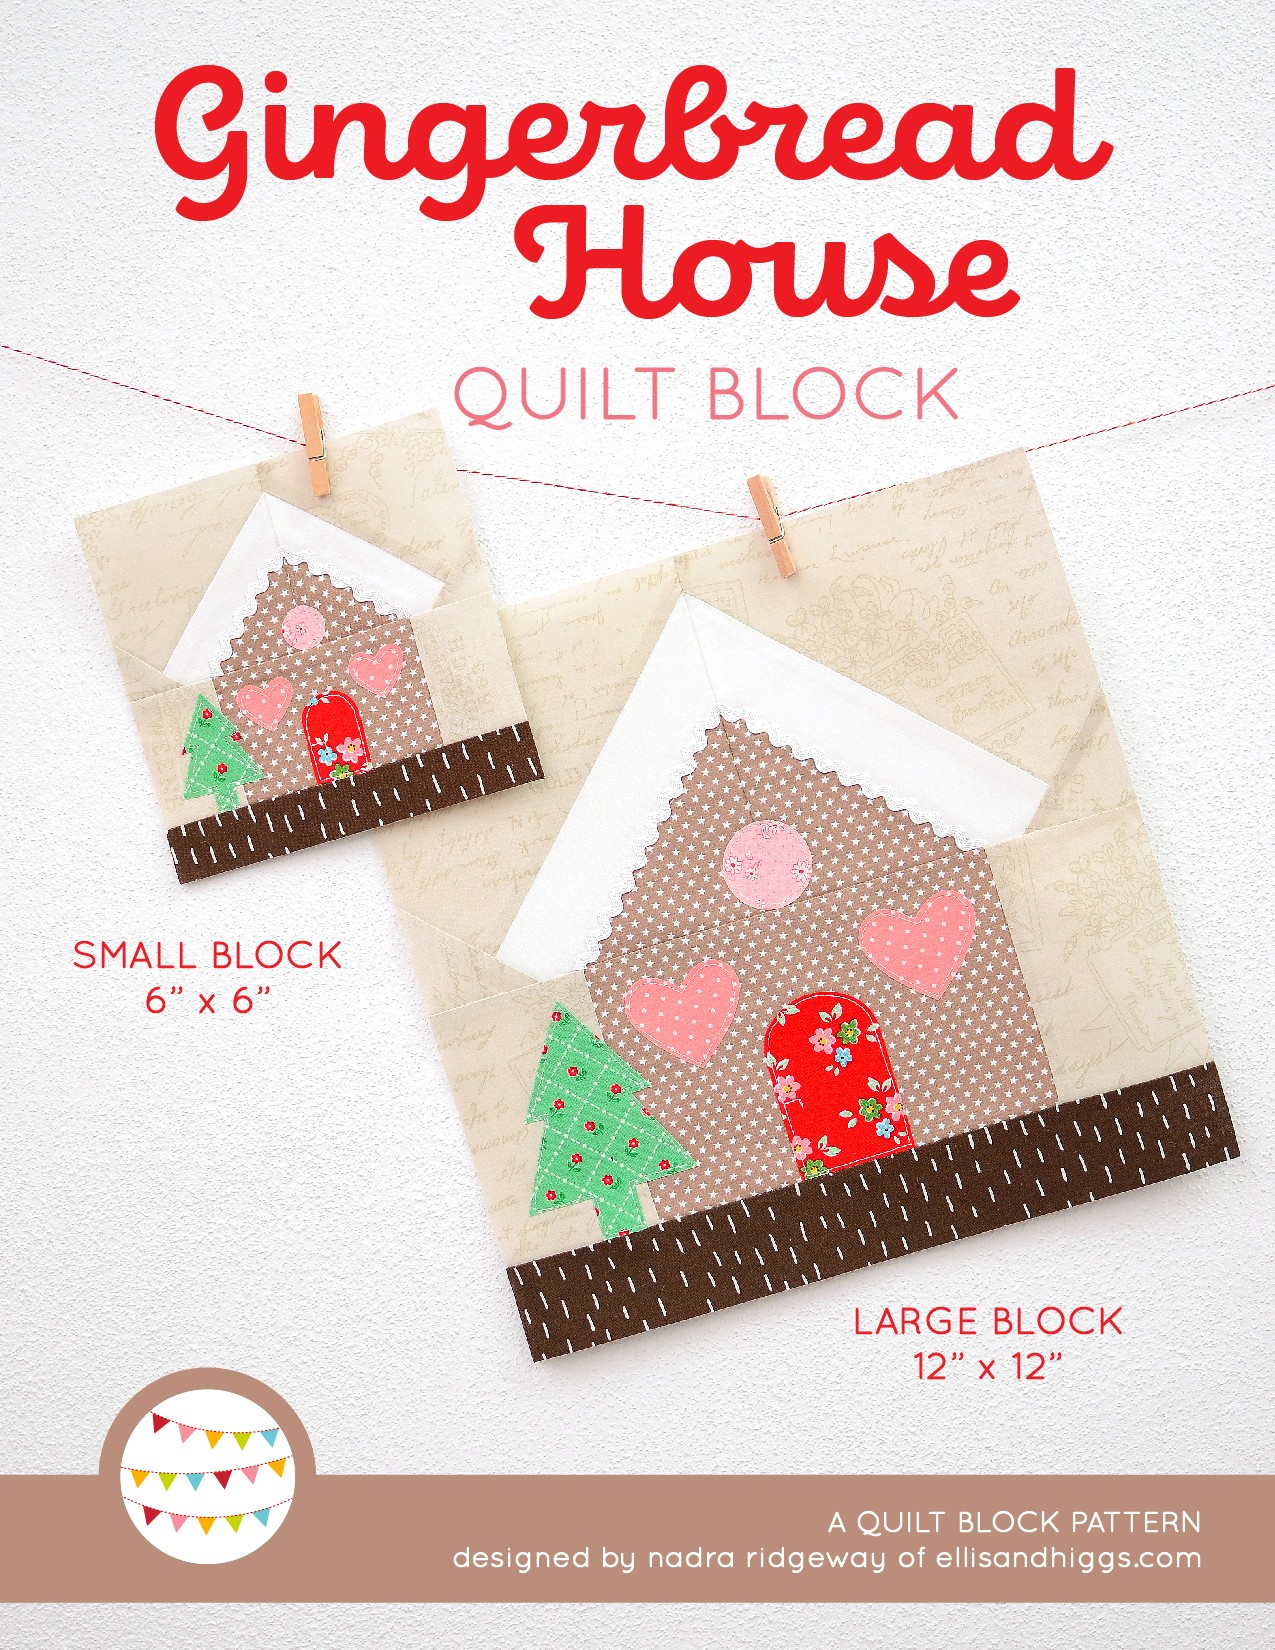 Gingerbread House Christmas quilt pattern